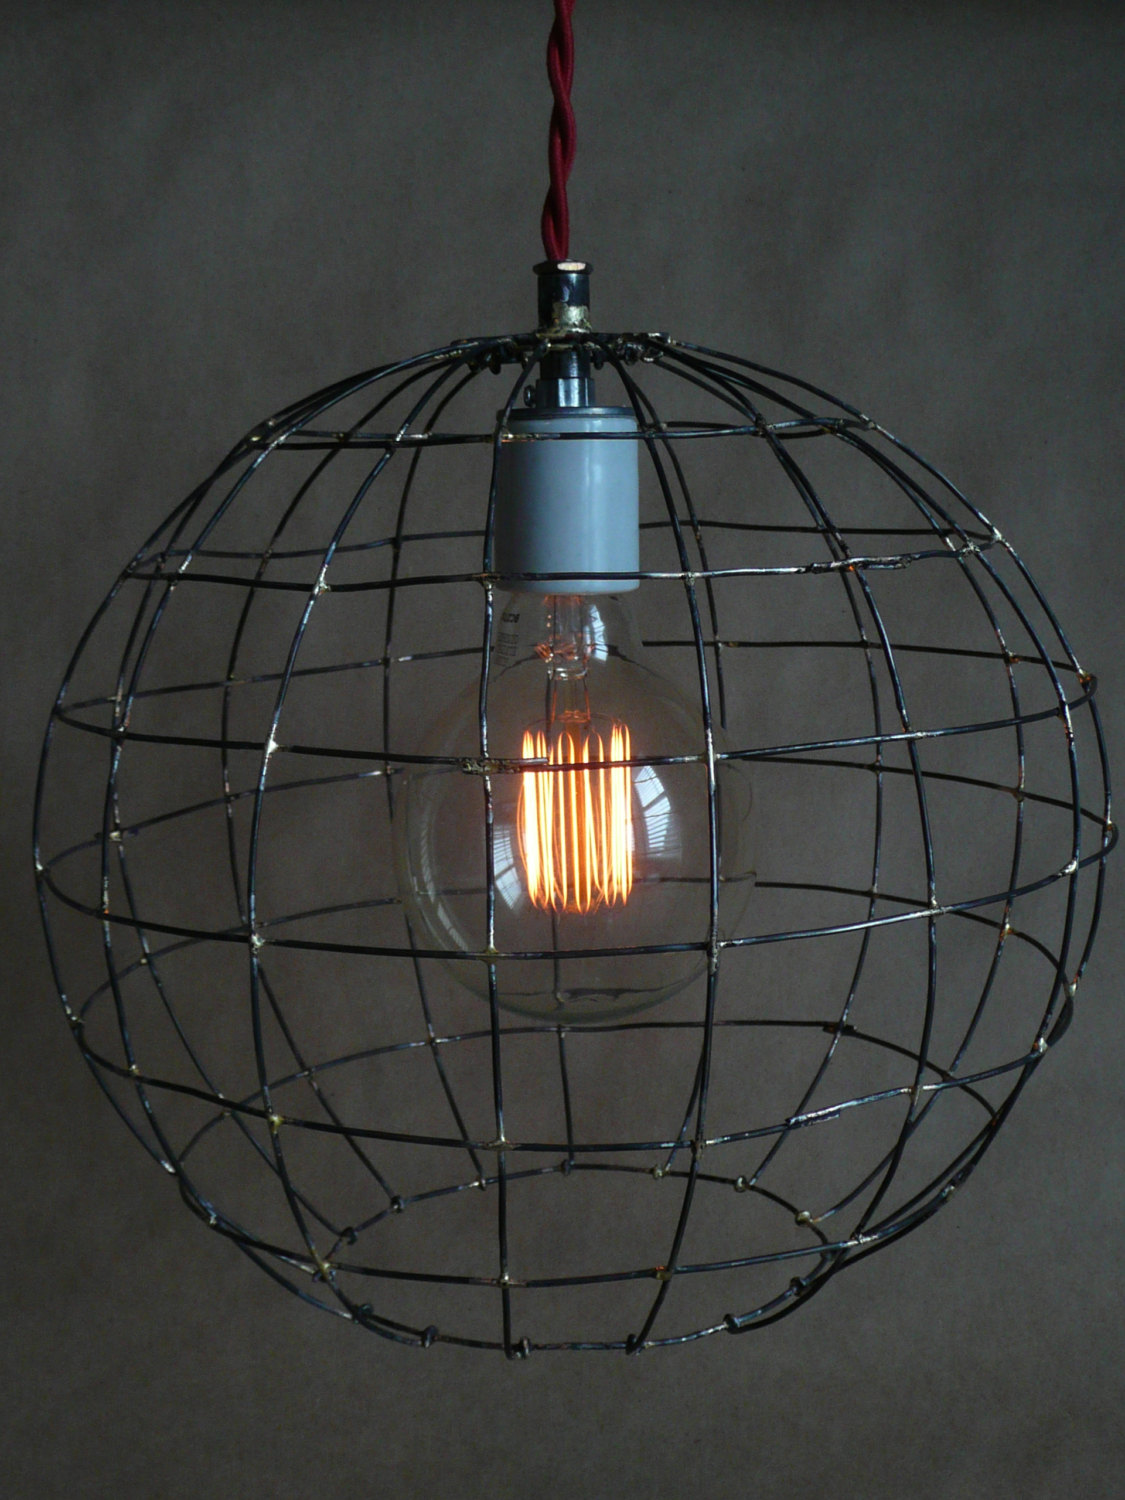 Rustic wire sphere pendant light Designs